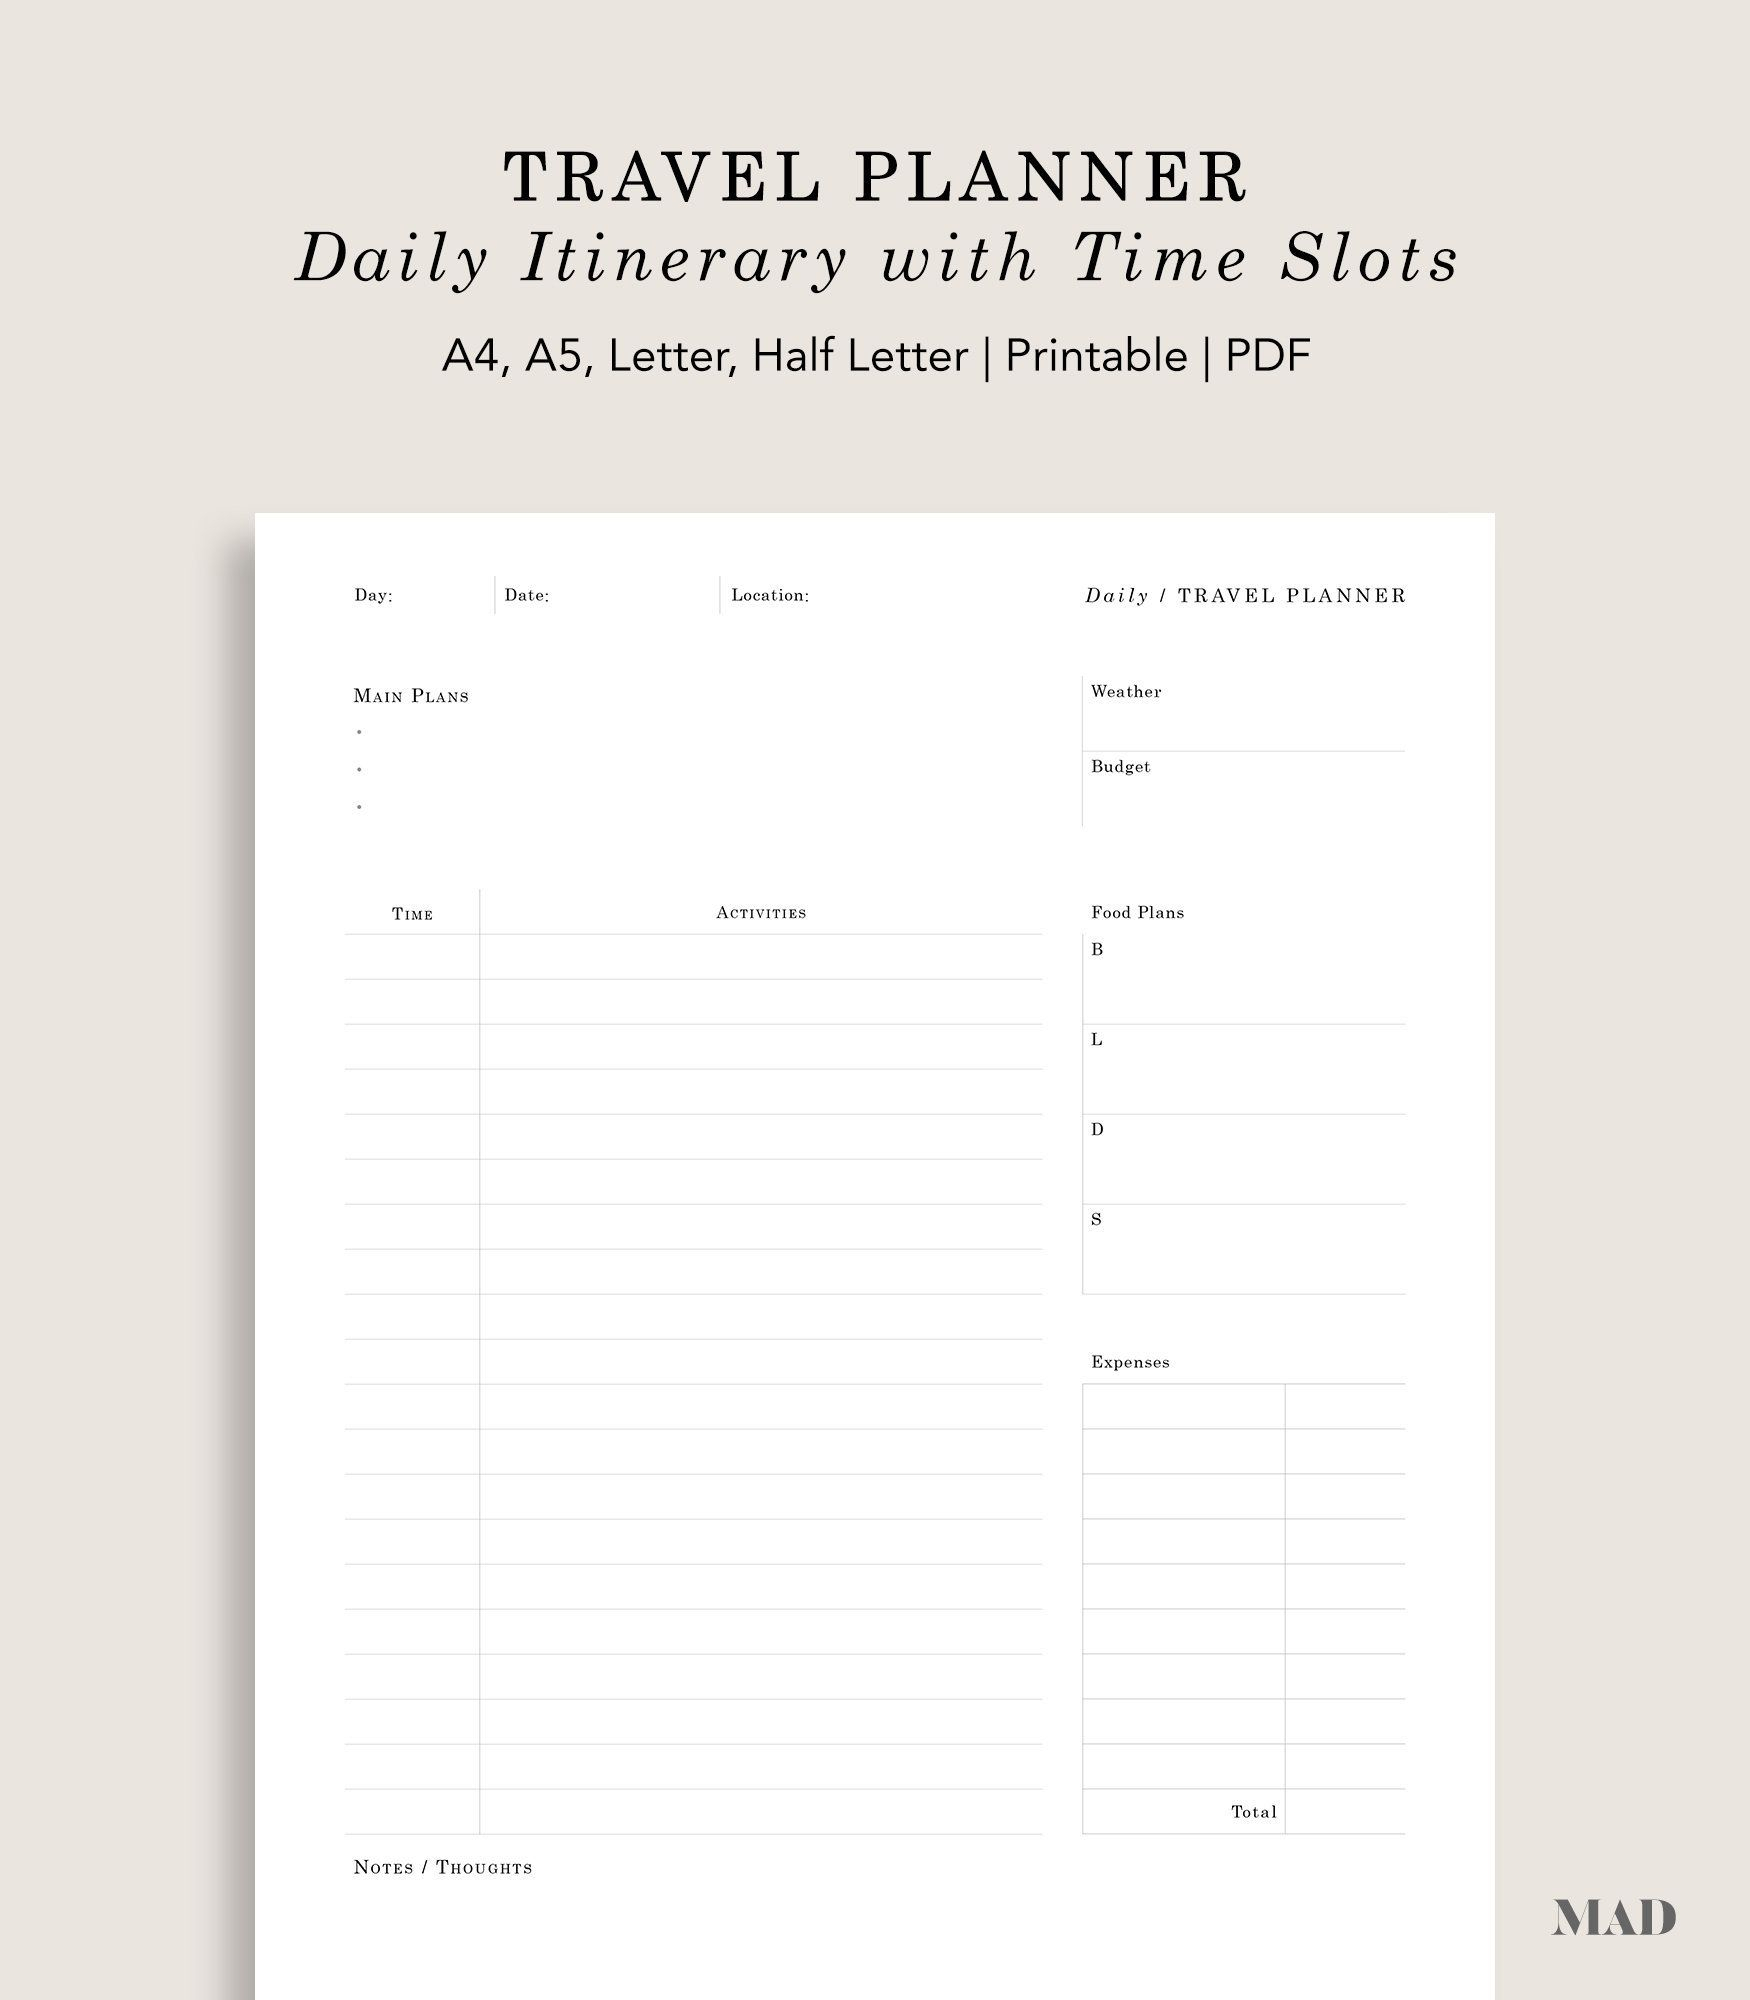 Daily Travel Planner With Time Slots | To Do List | Instant with Daily Planner With Time Slots